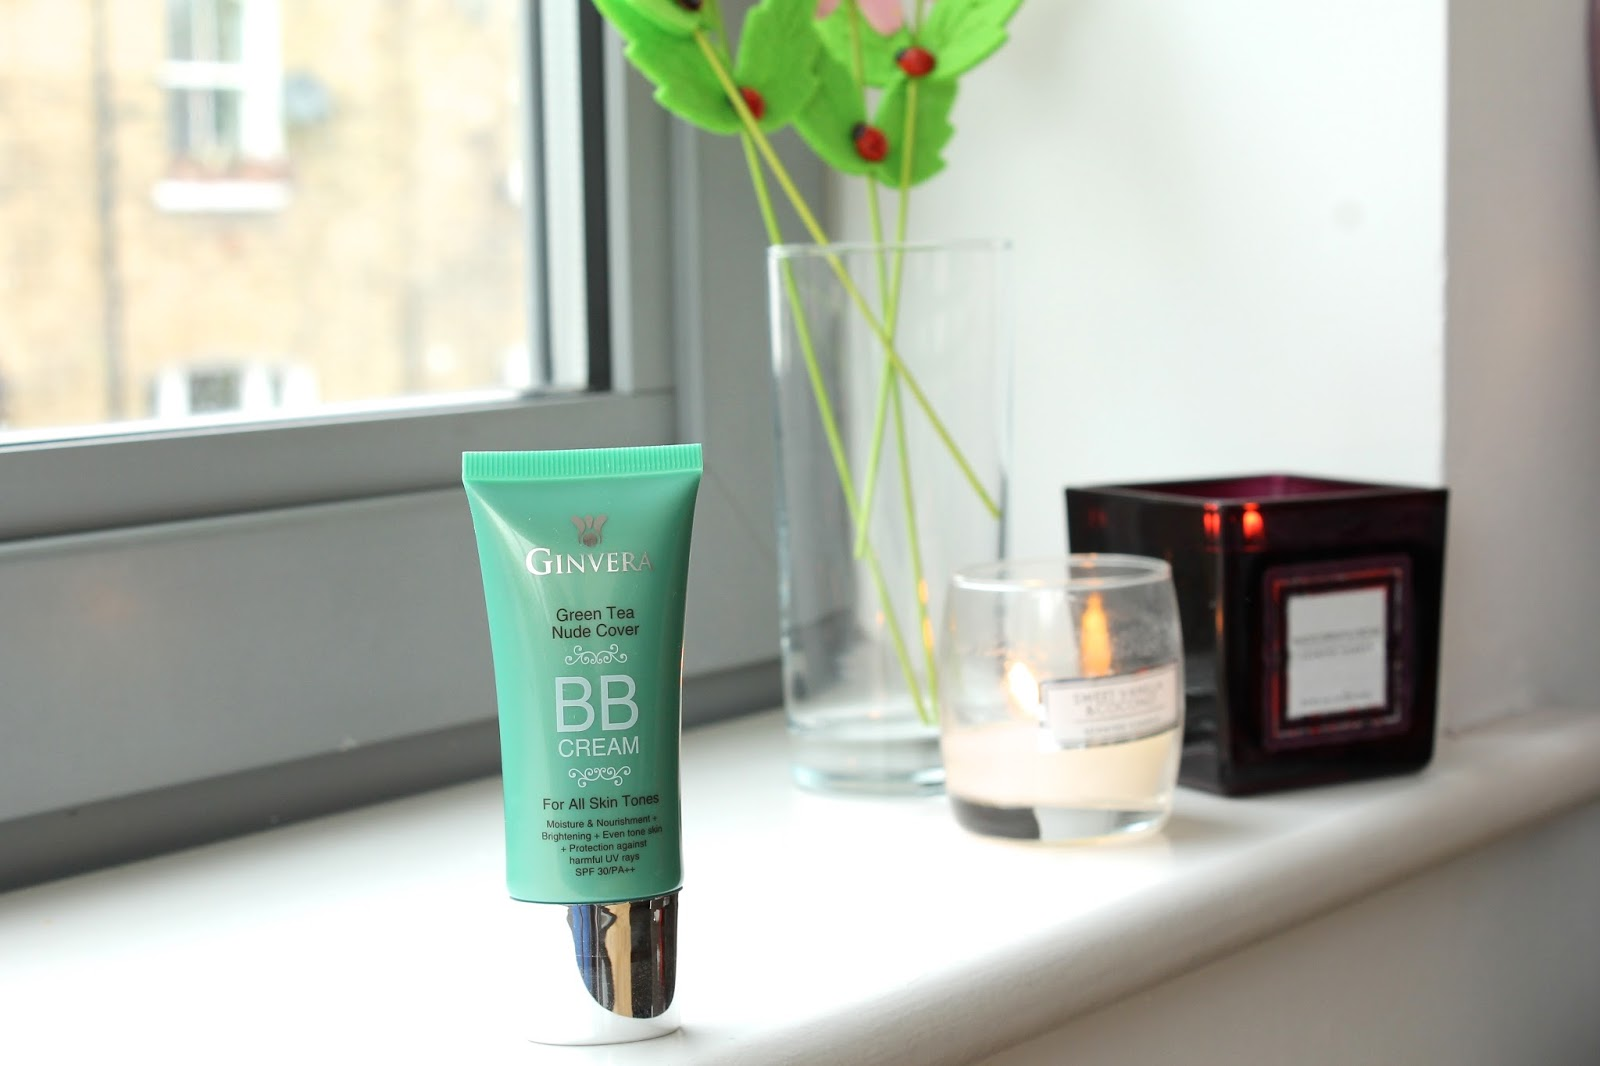 Bec Boop review of Ginvera BB Cream